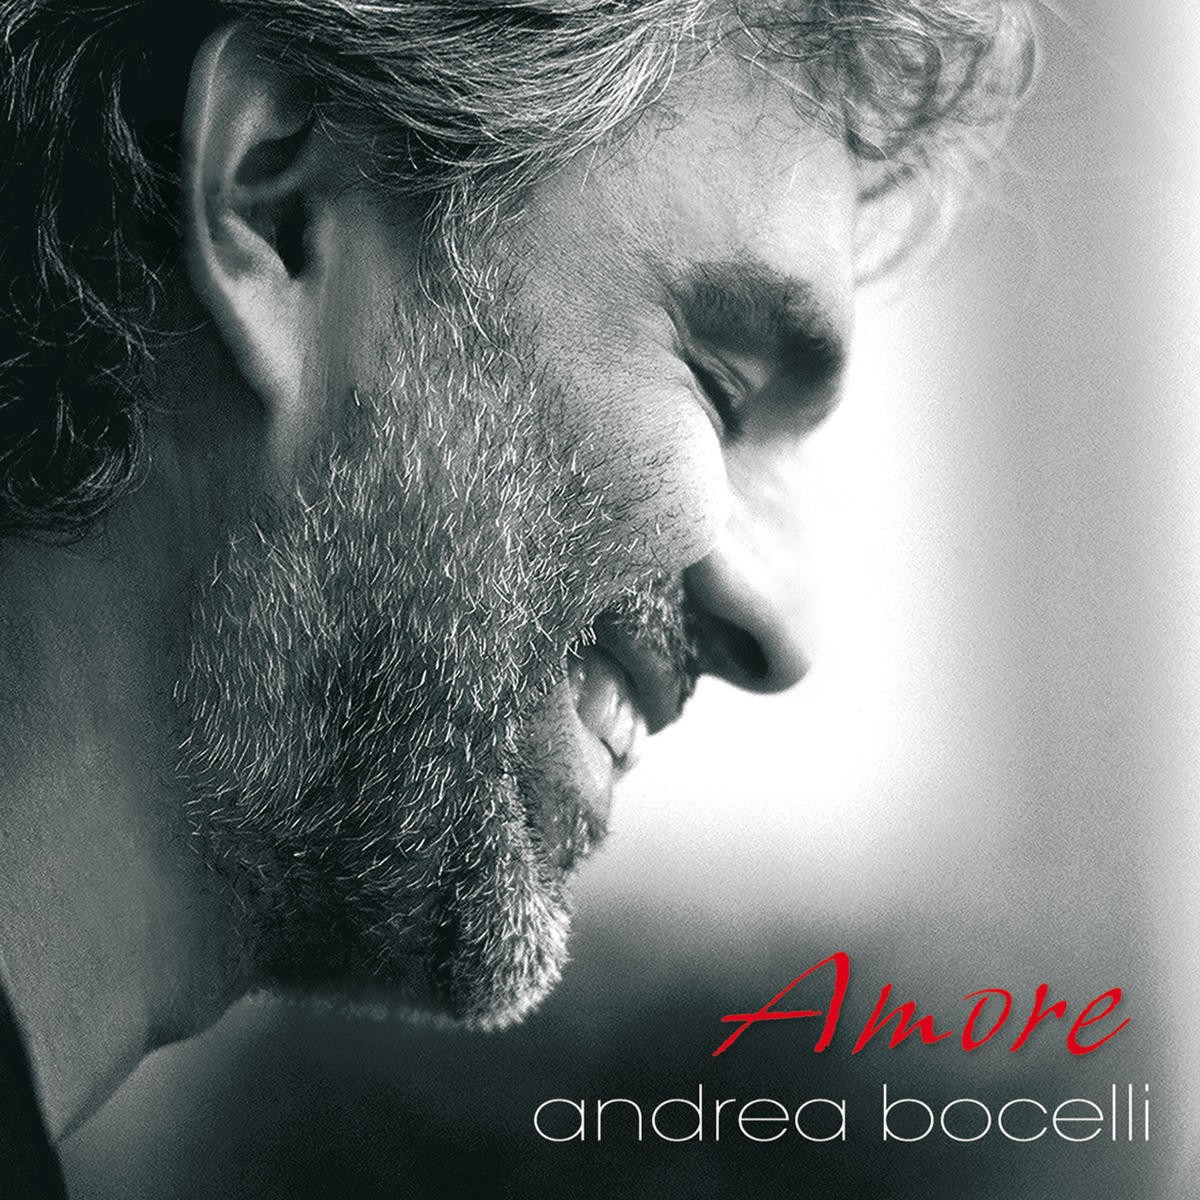 Andrea Bocelli - Amore (Remastered) CD - 06025 4730810